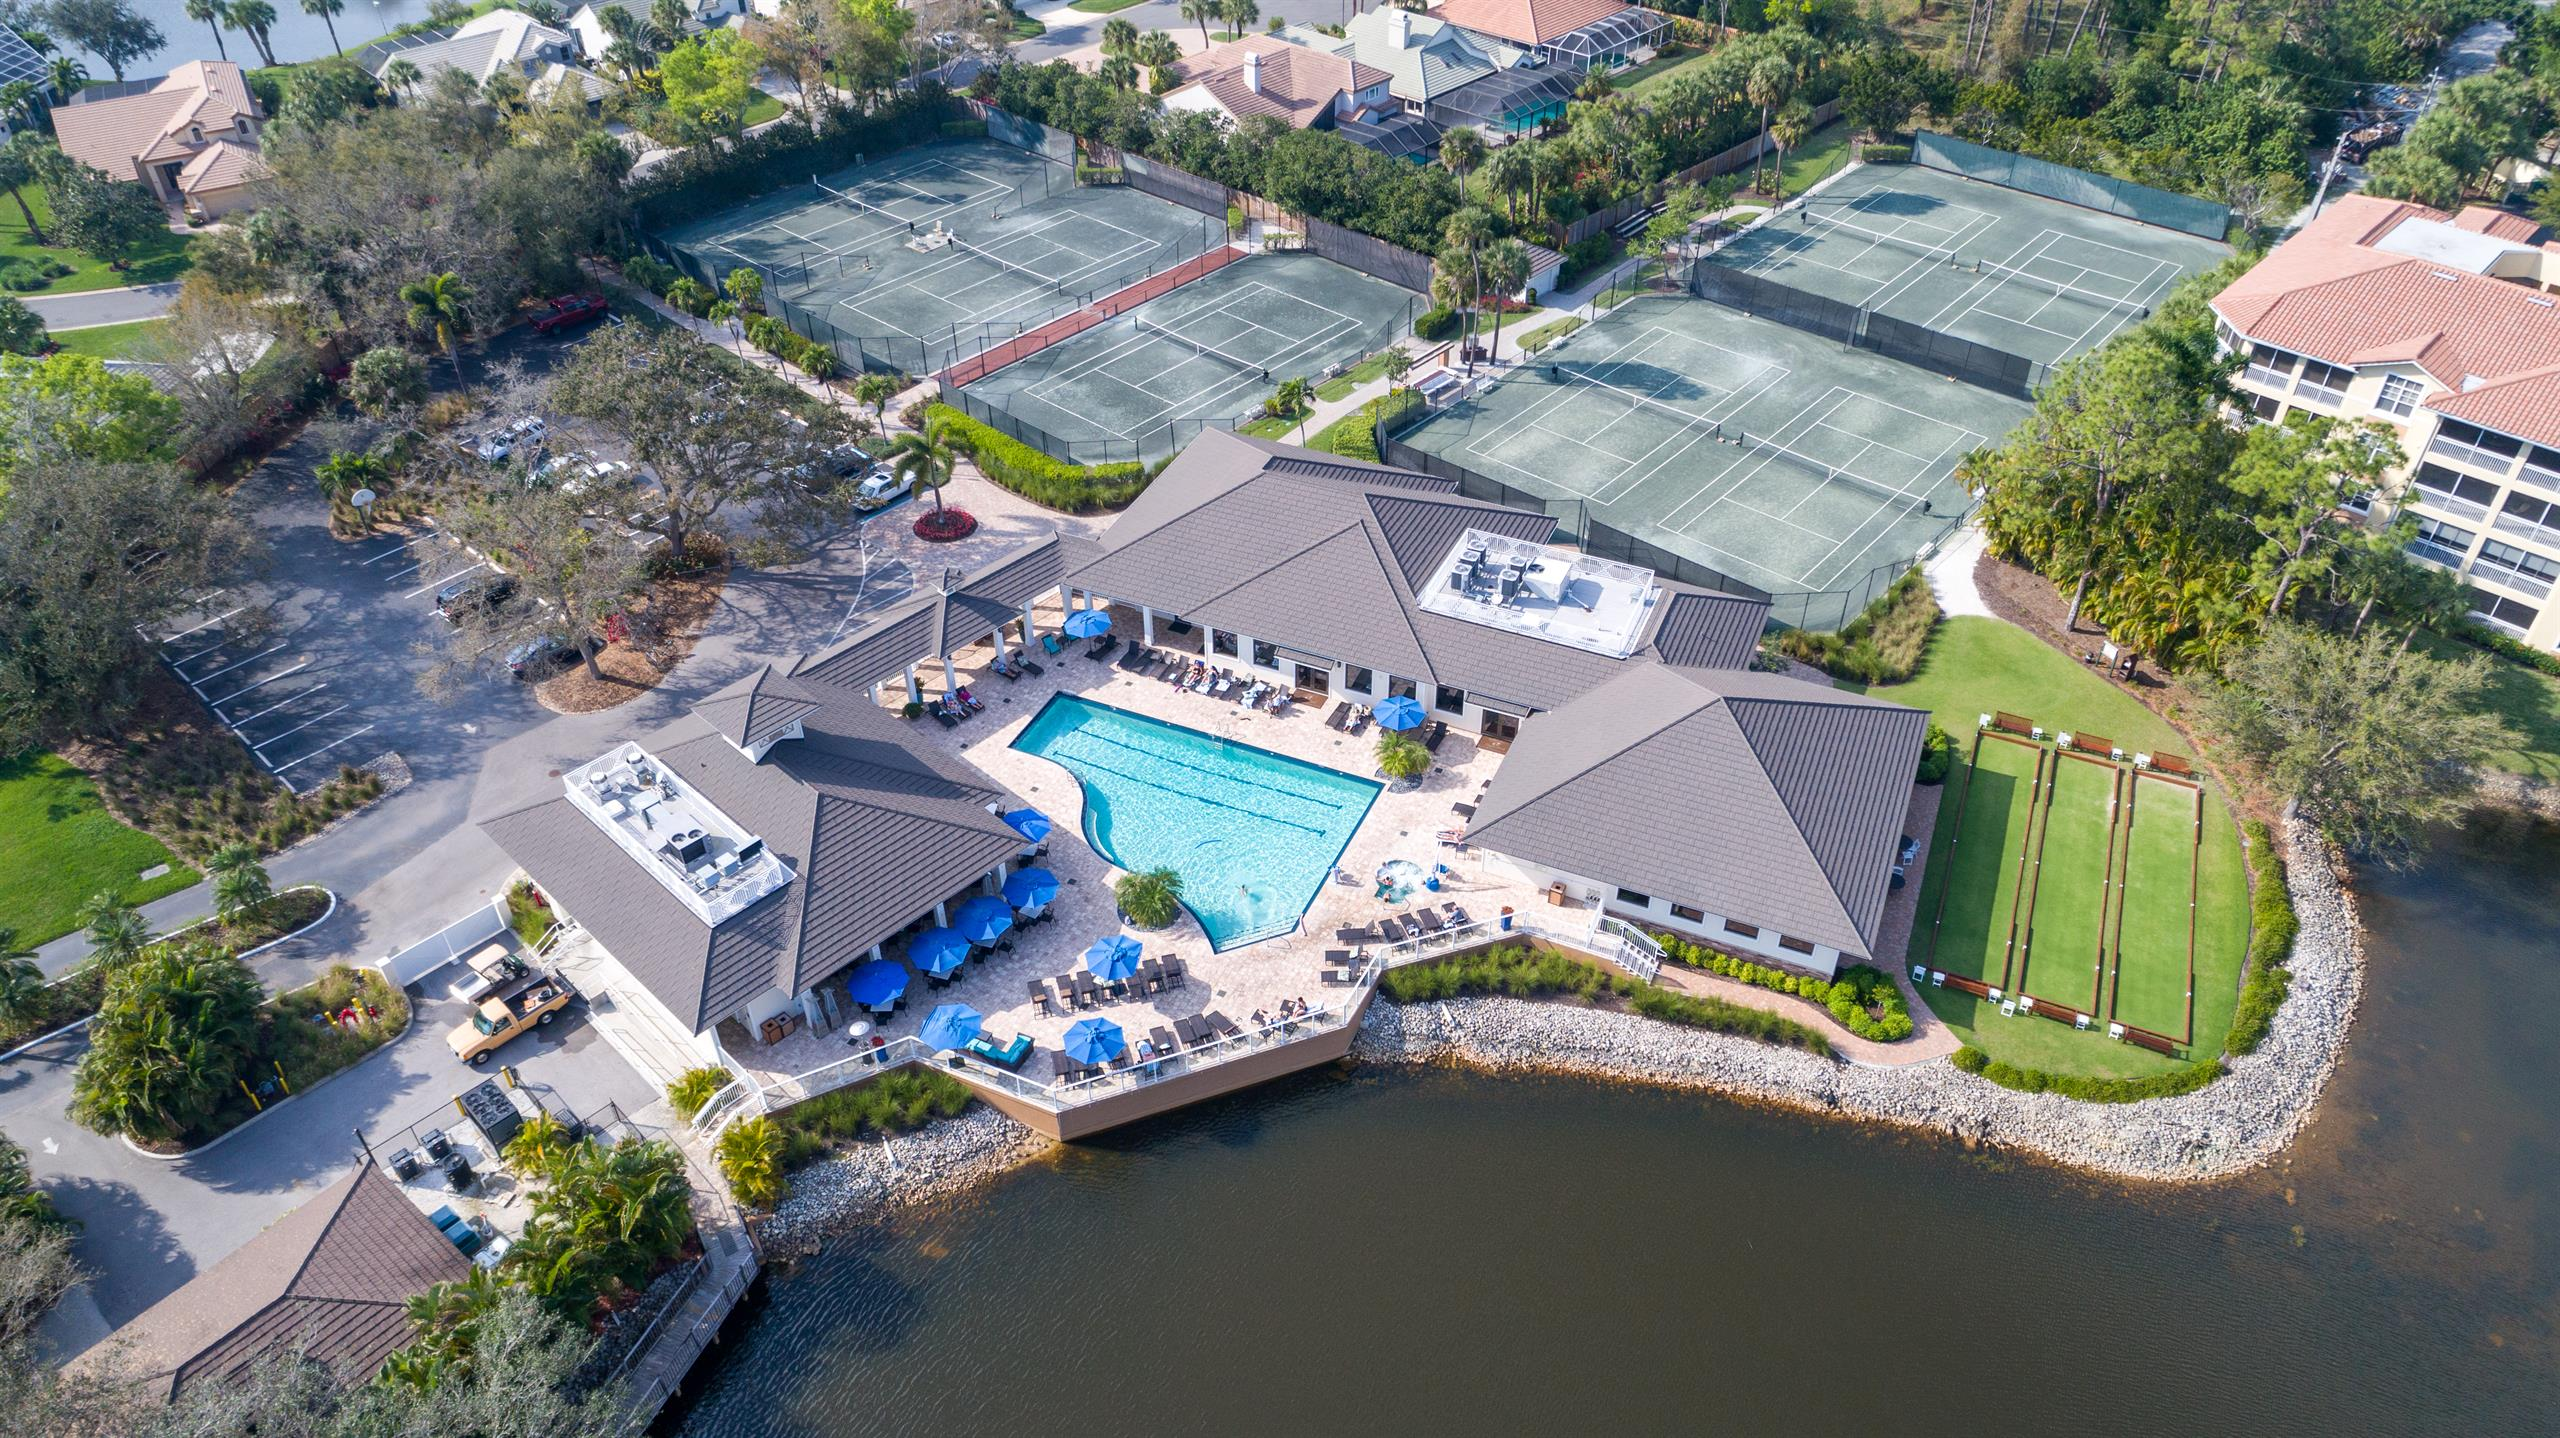 770-eagle-creek-dr-101-naples-fl-34113-amenities-11